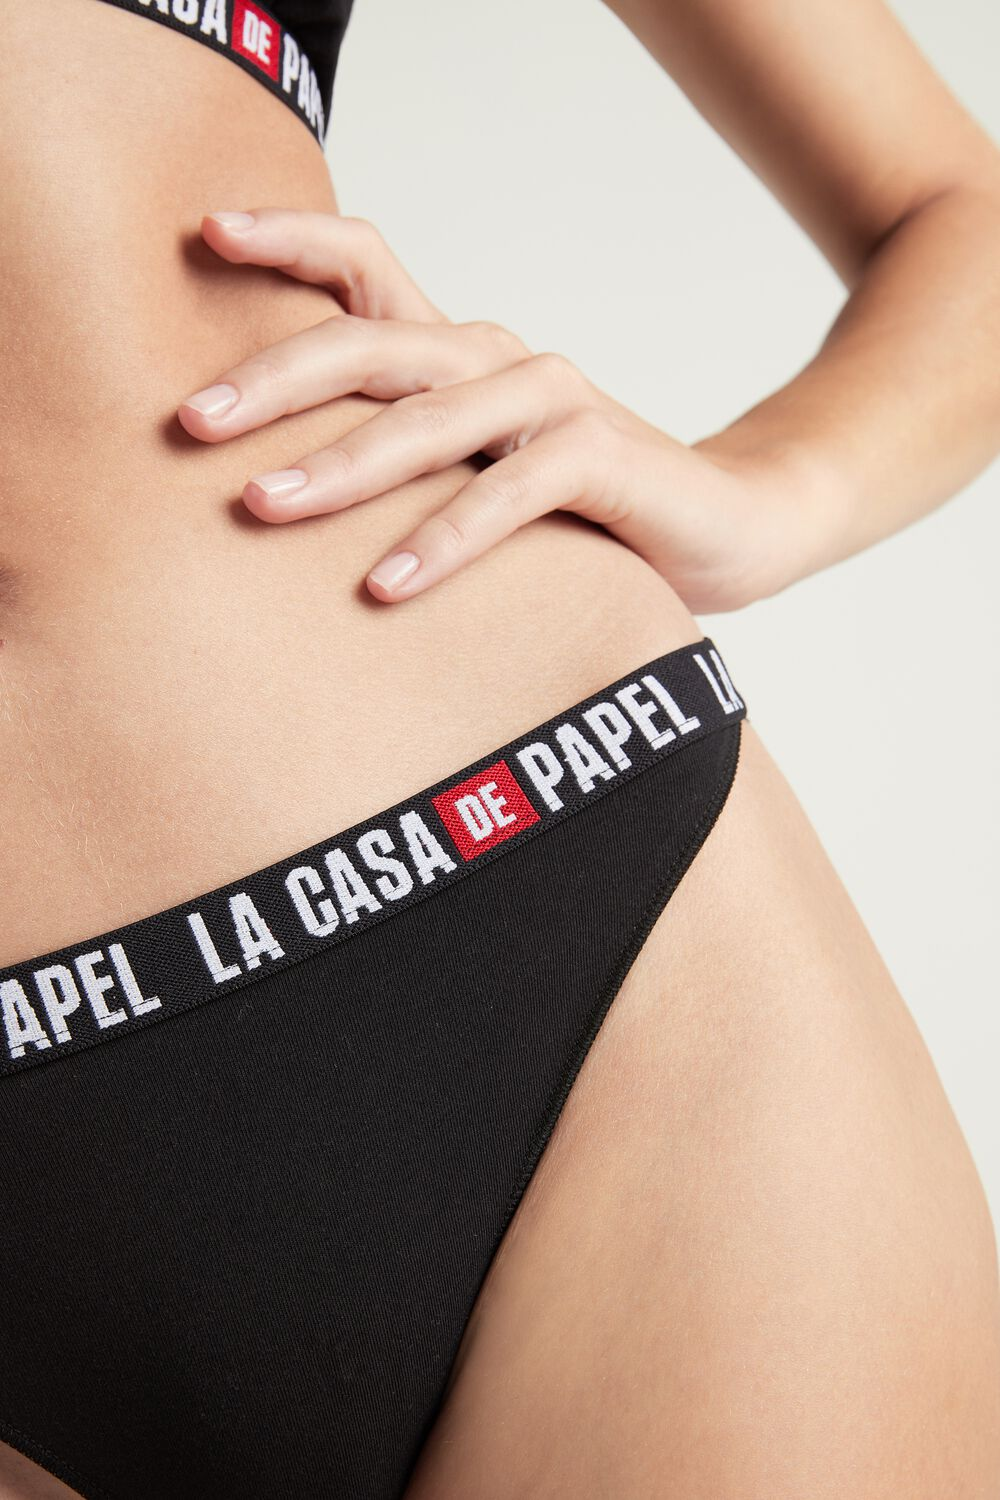 """La casa de papel"" Cotton Briefs"